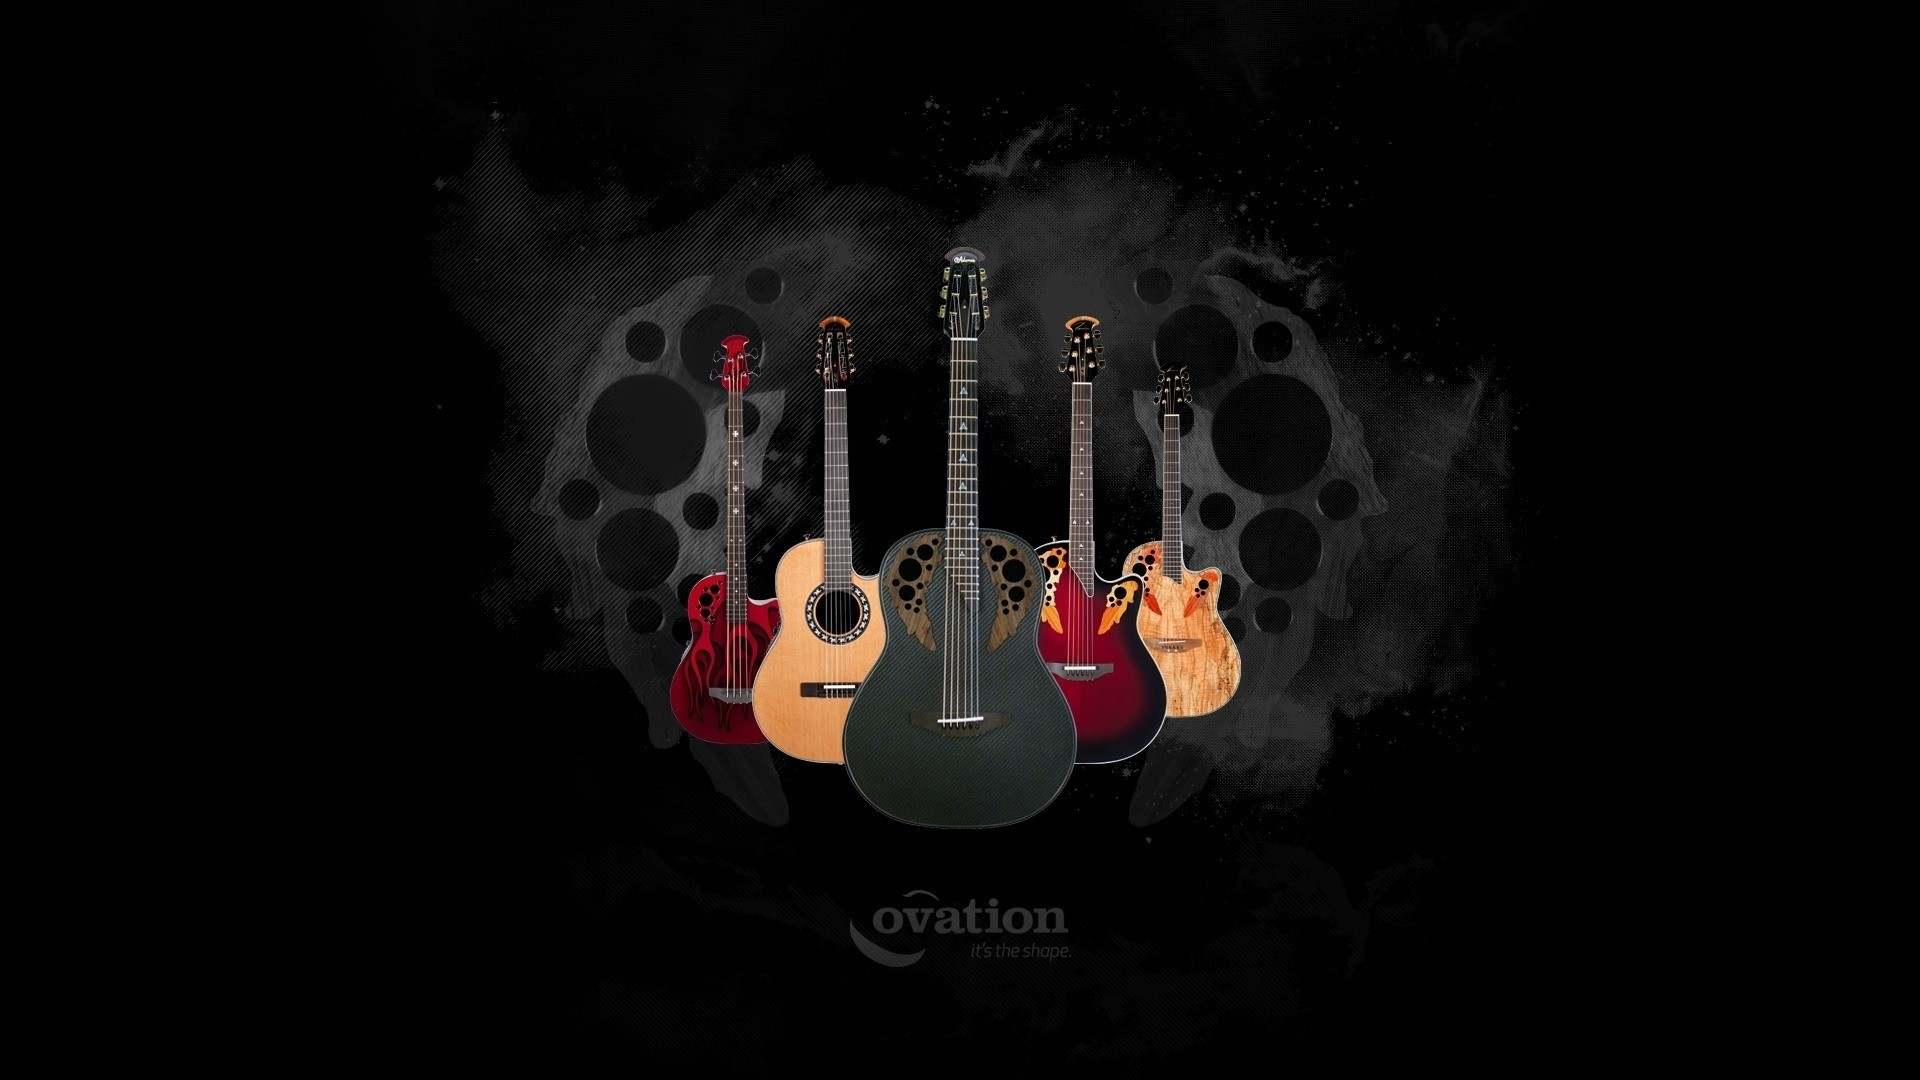 1920x1080 Guitar images Guitar HD wallpaper and background photos